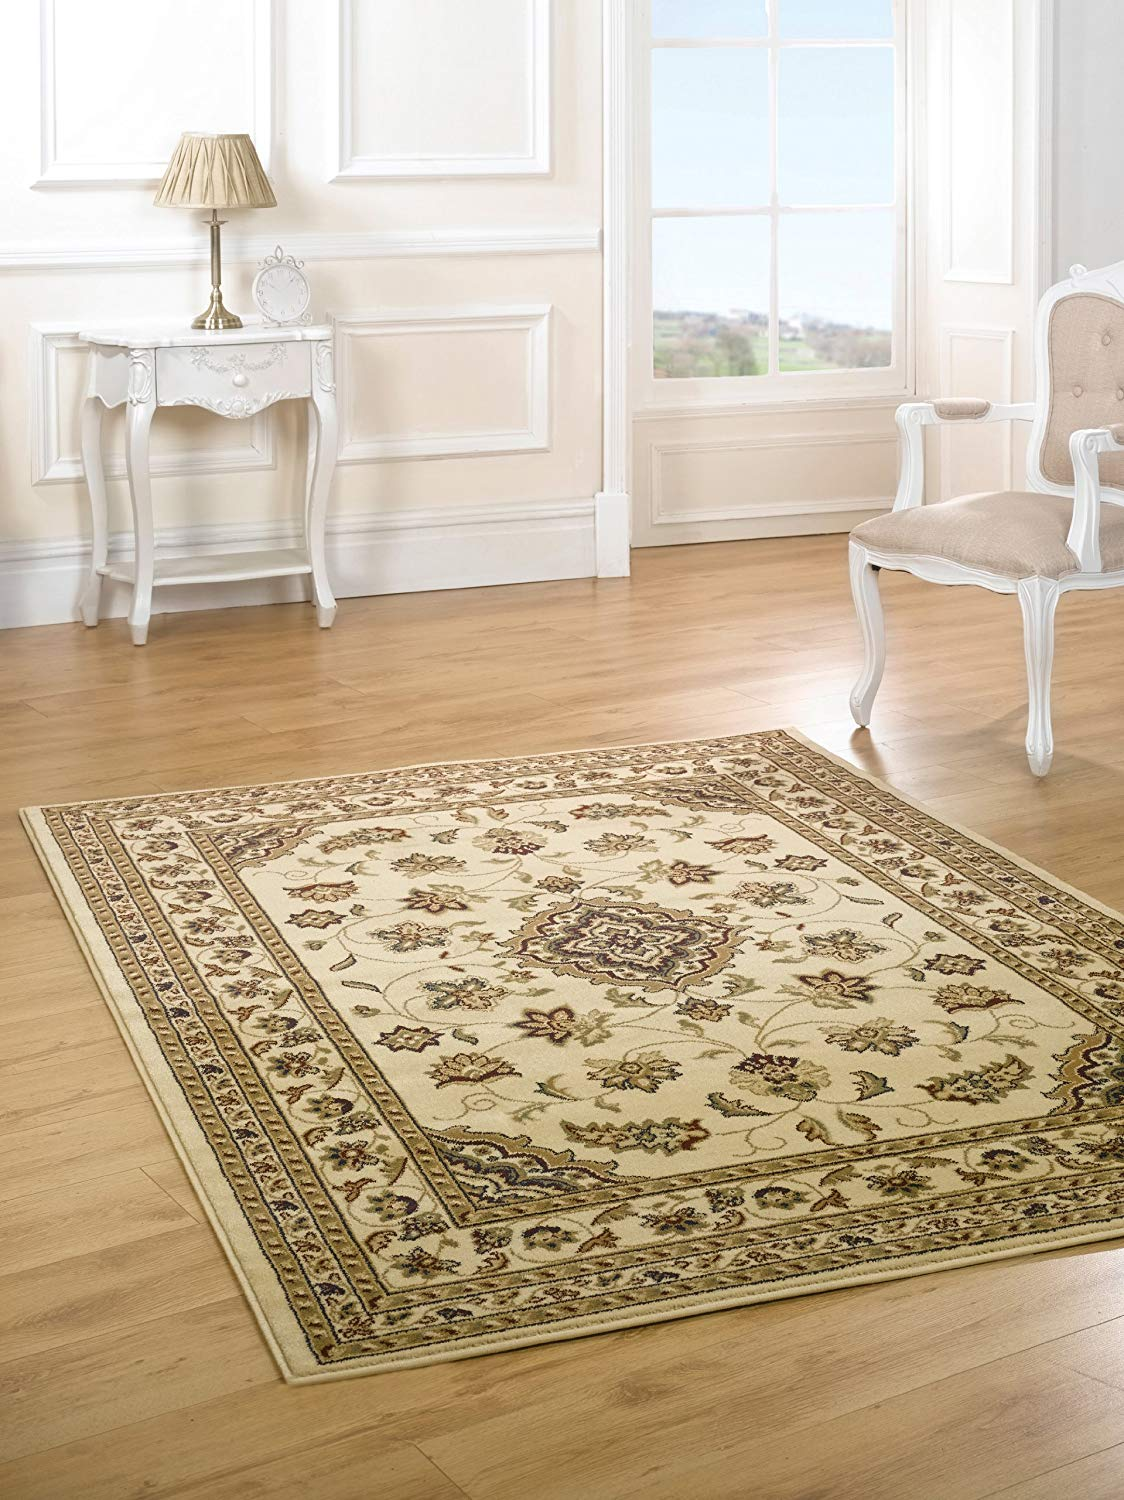 Rug carpet amazon.com: very large new quality traditional beige rug carpet 240 x 330 BFKKWQV